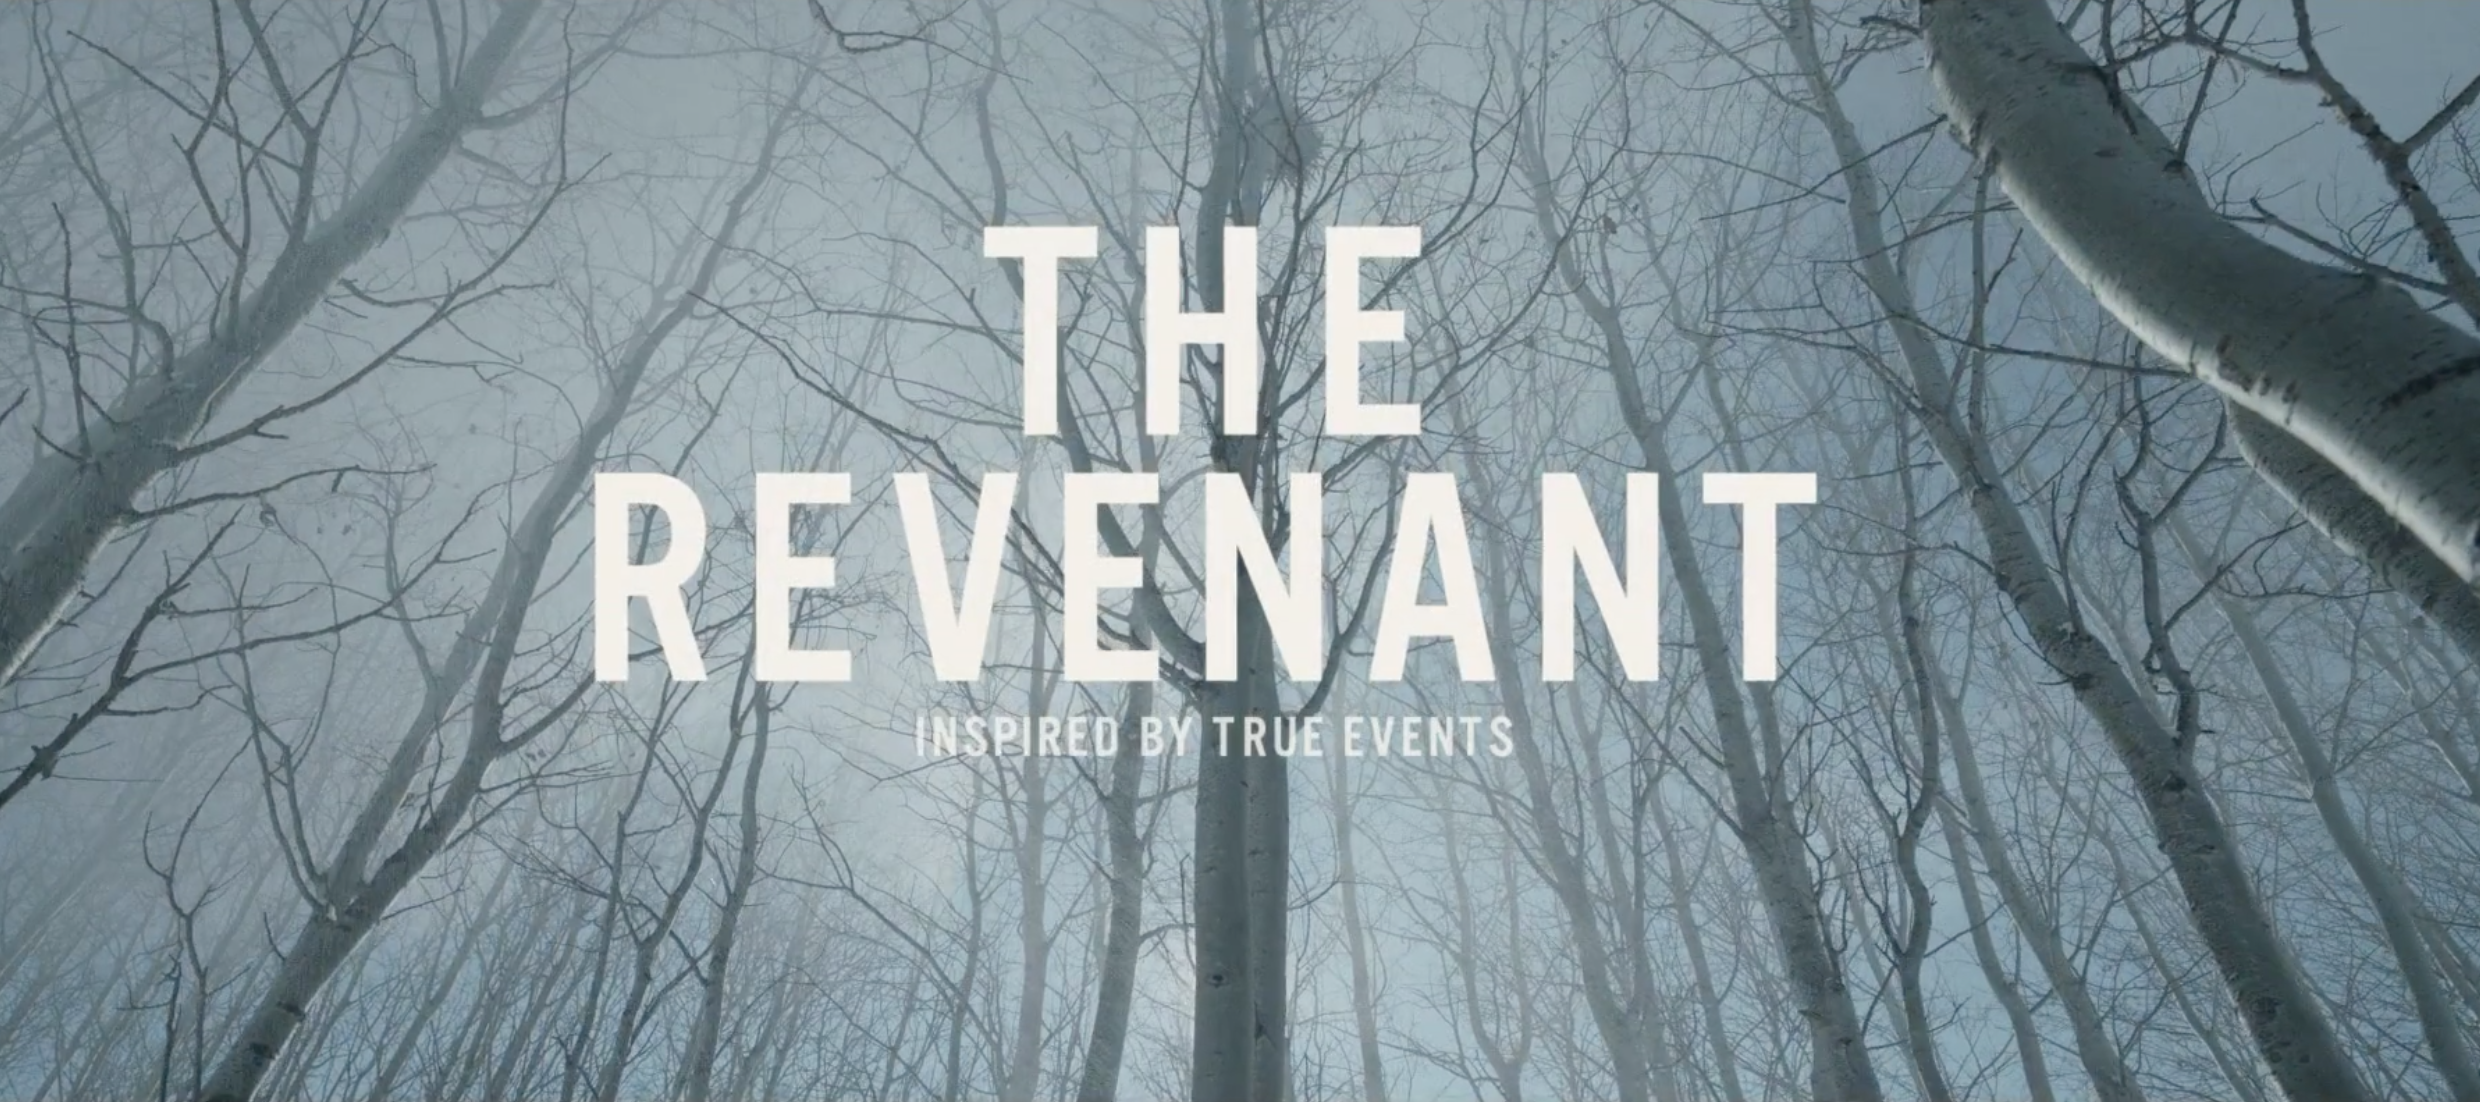 Movie Trailers Images The Revenant Wallpapers Hd Wallpaper And